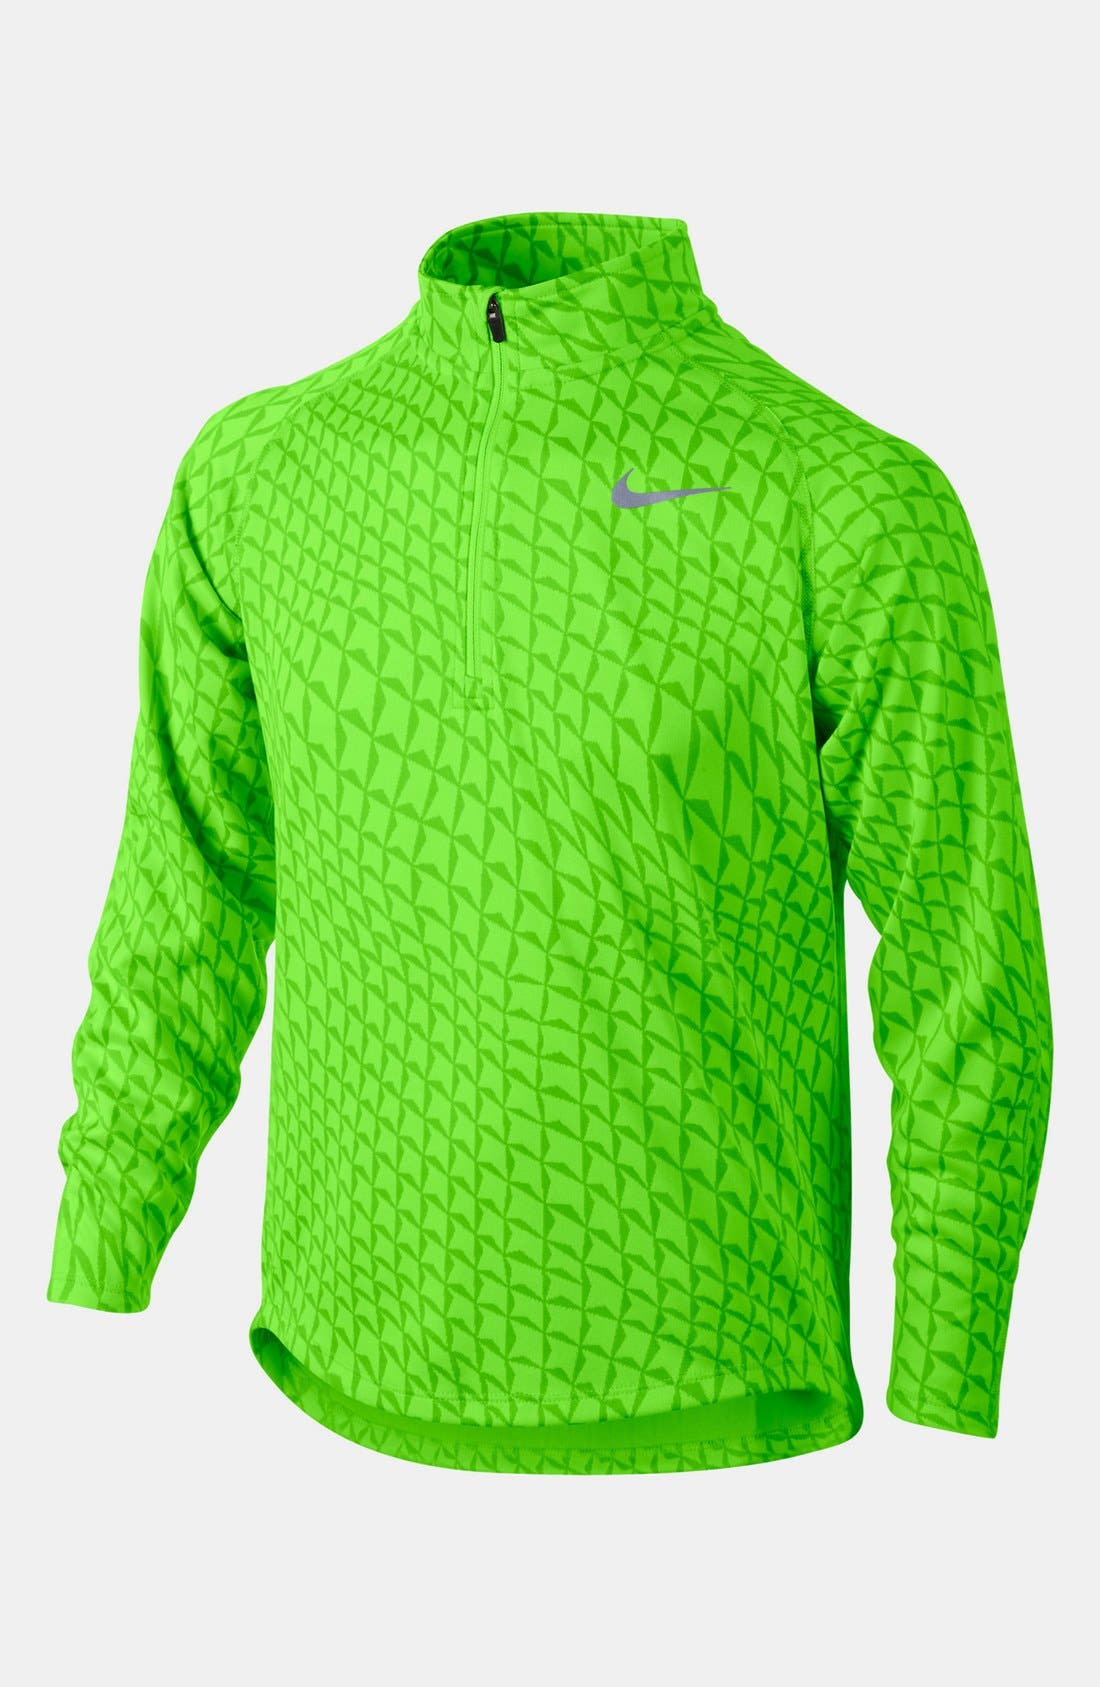 Alternate Image 1 Selected - Nike 'Element' Dri-FIT Half Zip Running Top (Big Boys)